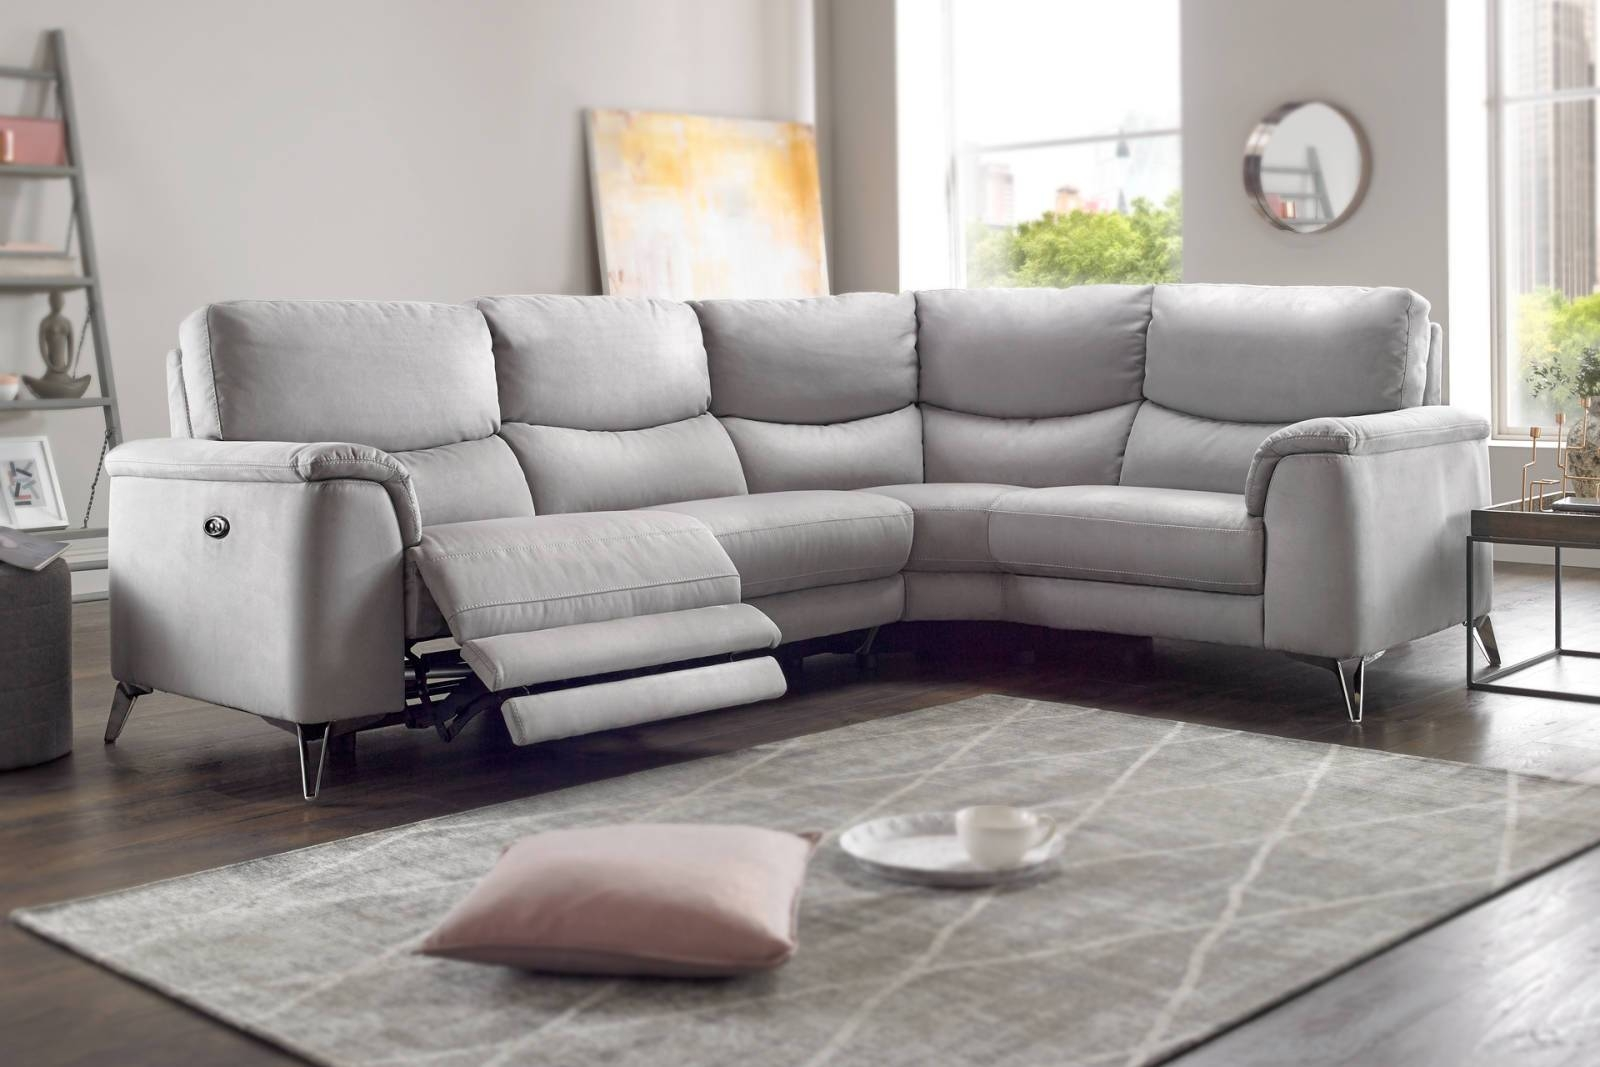 Corner Sofas In Leather, Fabric | Sofology inside Corner Sofa Leather (Image 6 of 30)